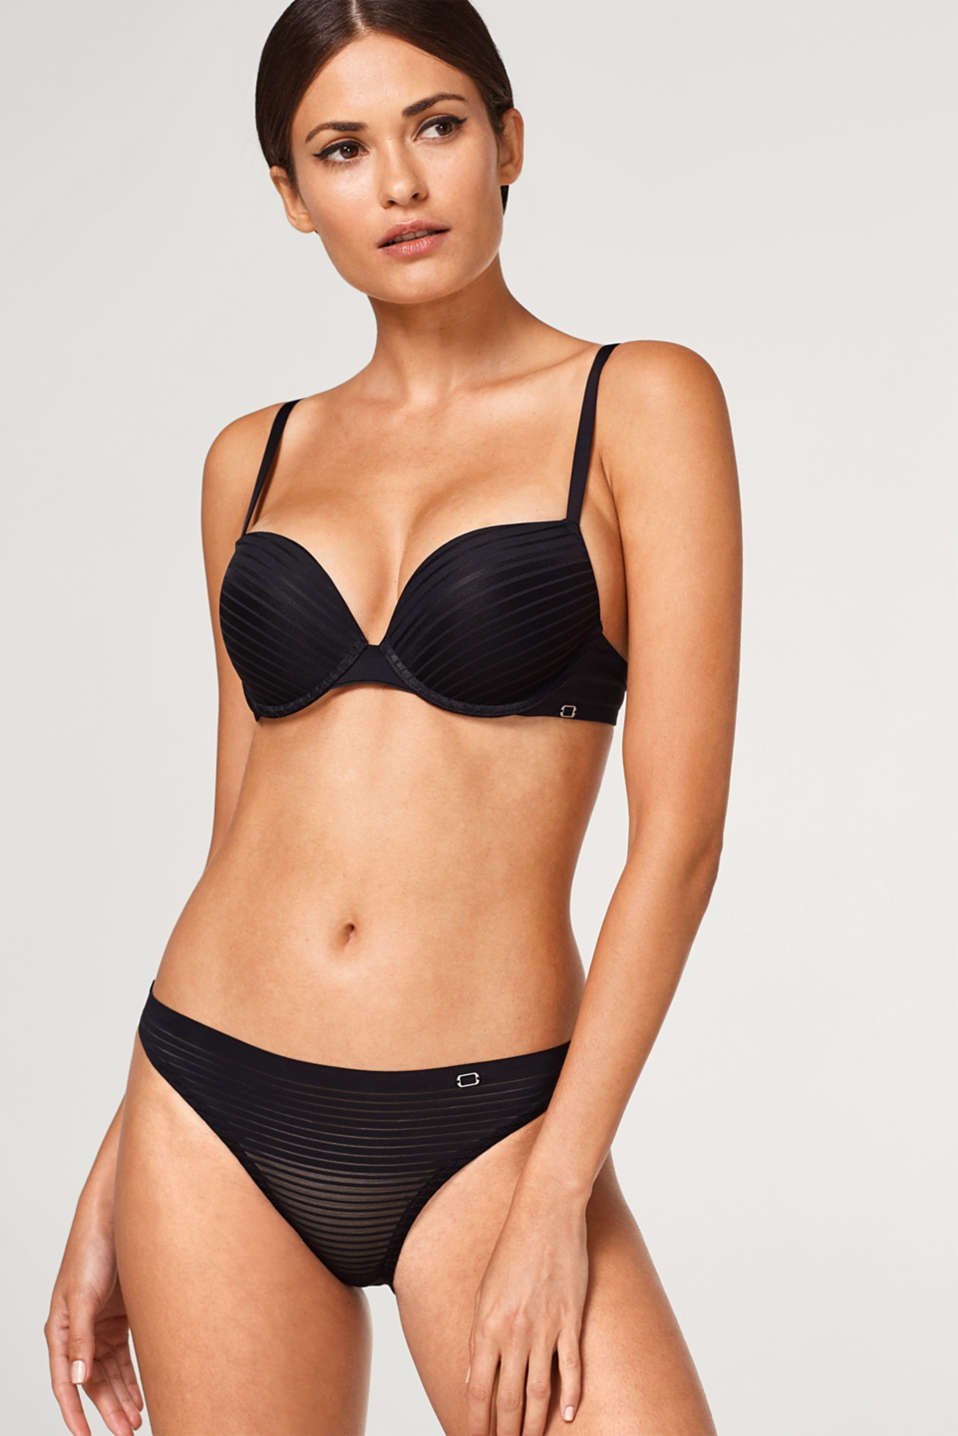 Esprit - NYE push-up bra with tonal micro stripes